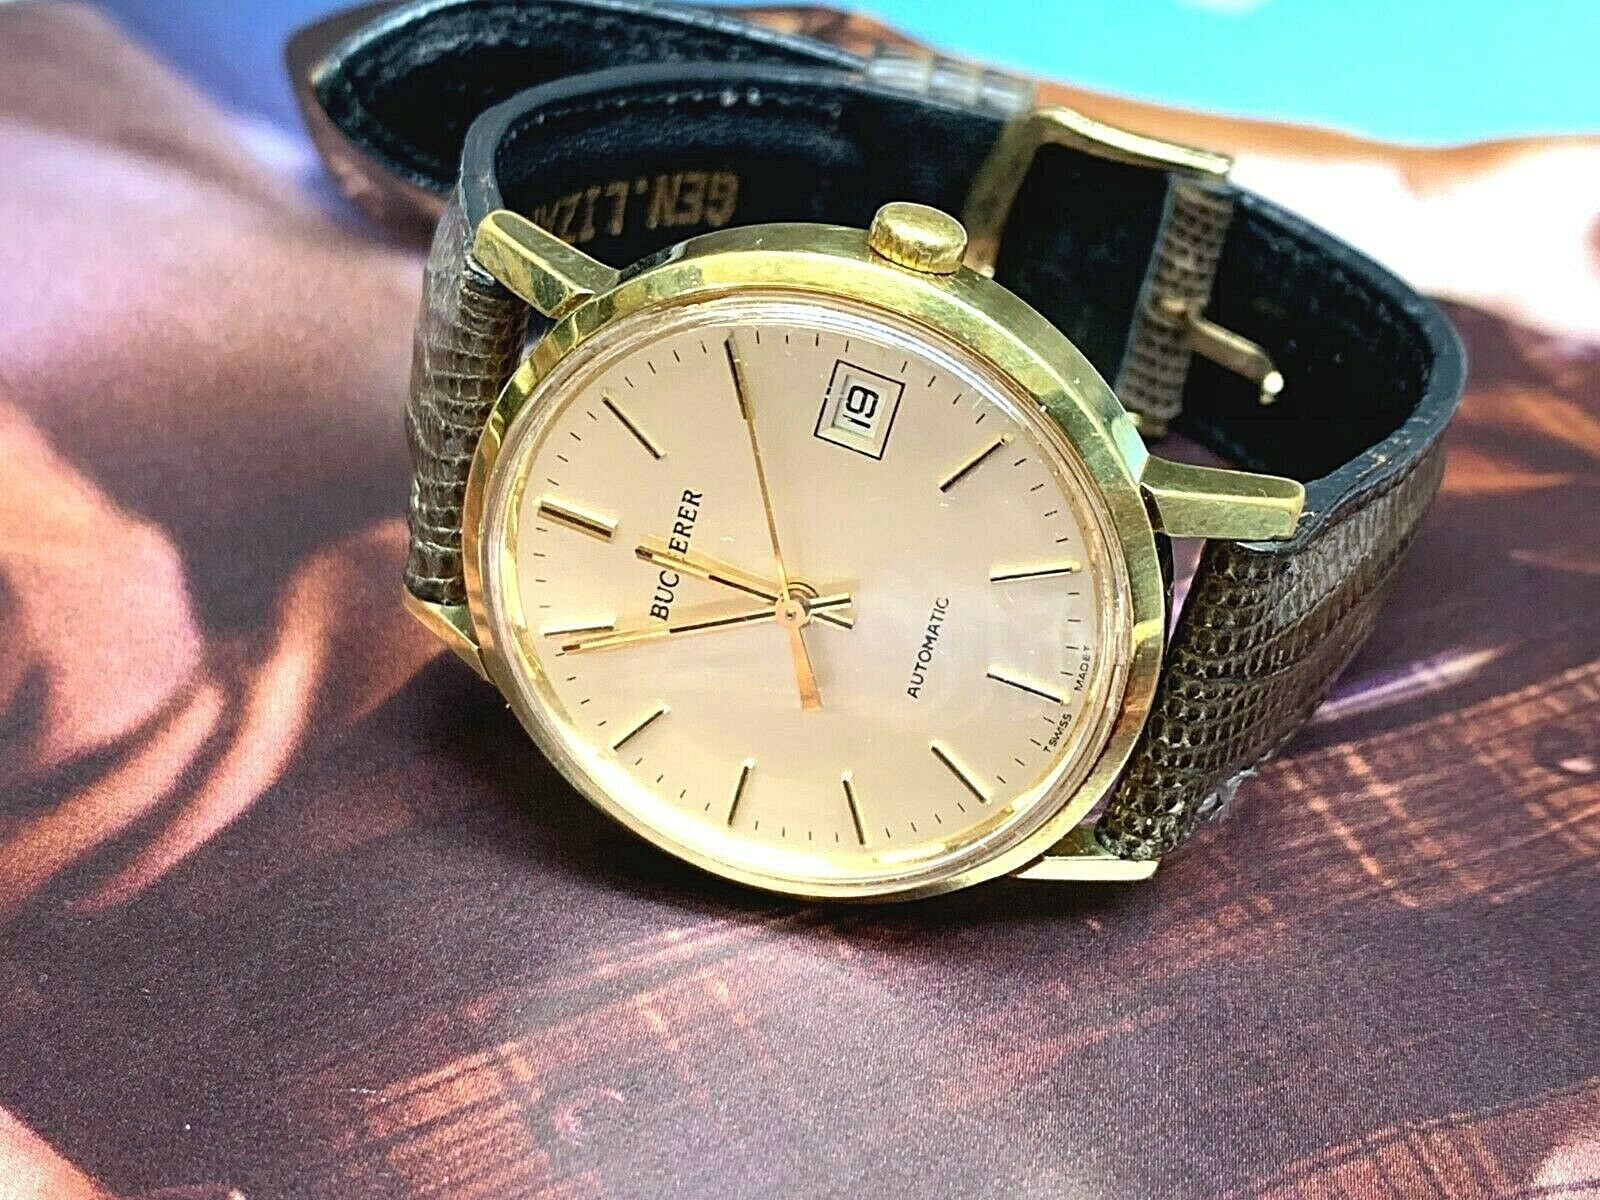 BUCHERER SWISS AUTOMATIC 25 JEWEL DATE COMPLETE SERVICED NICE WATCH